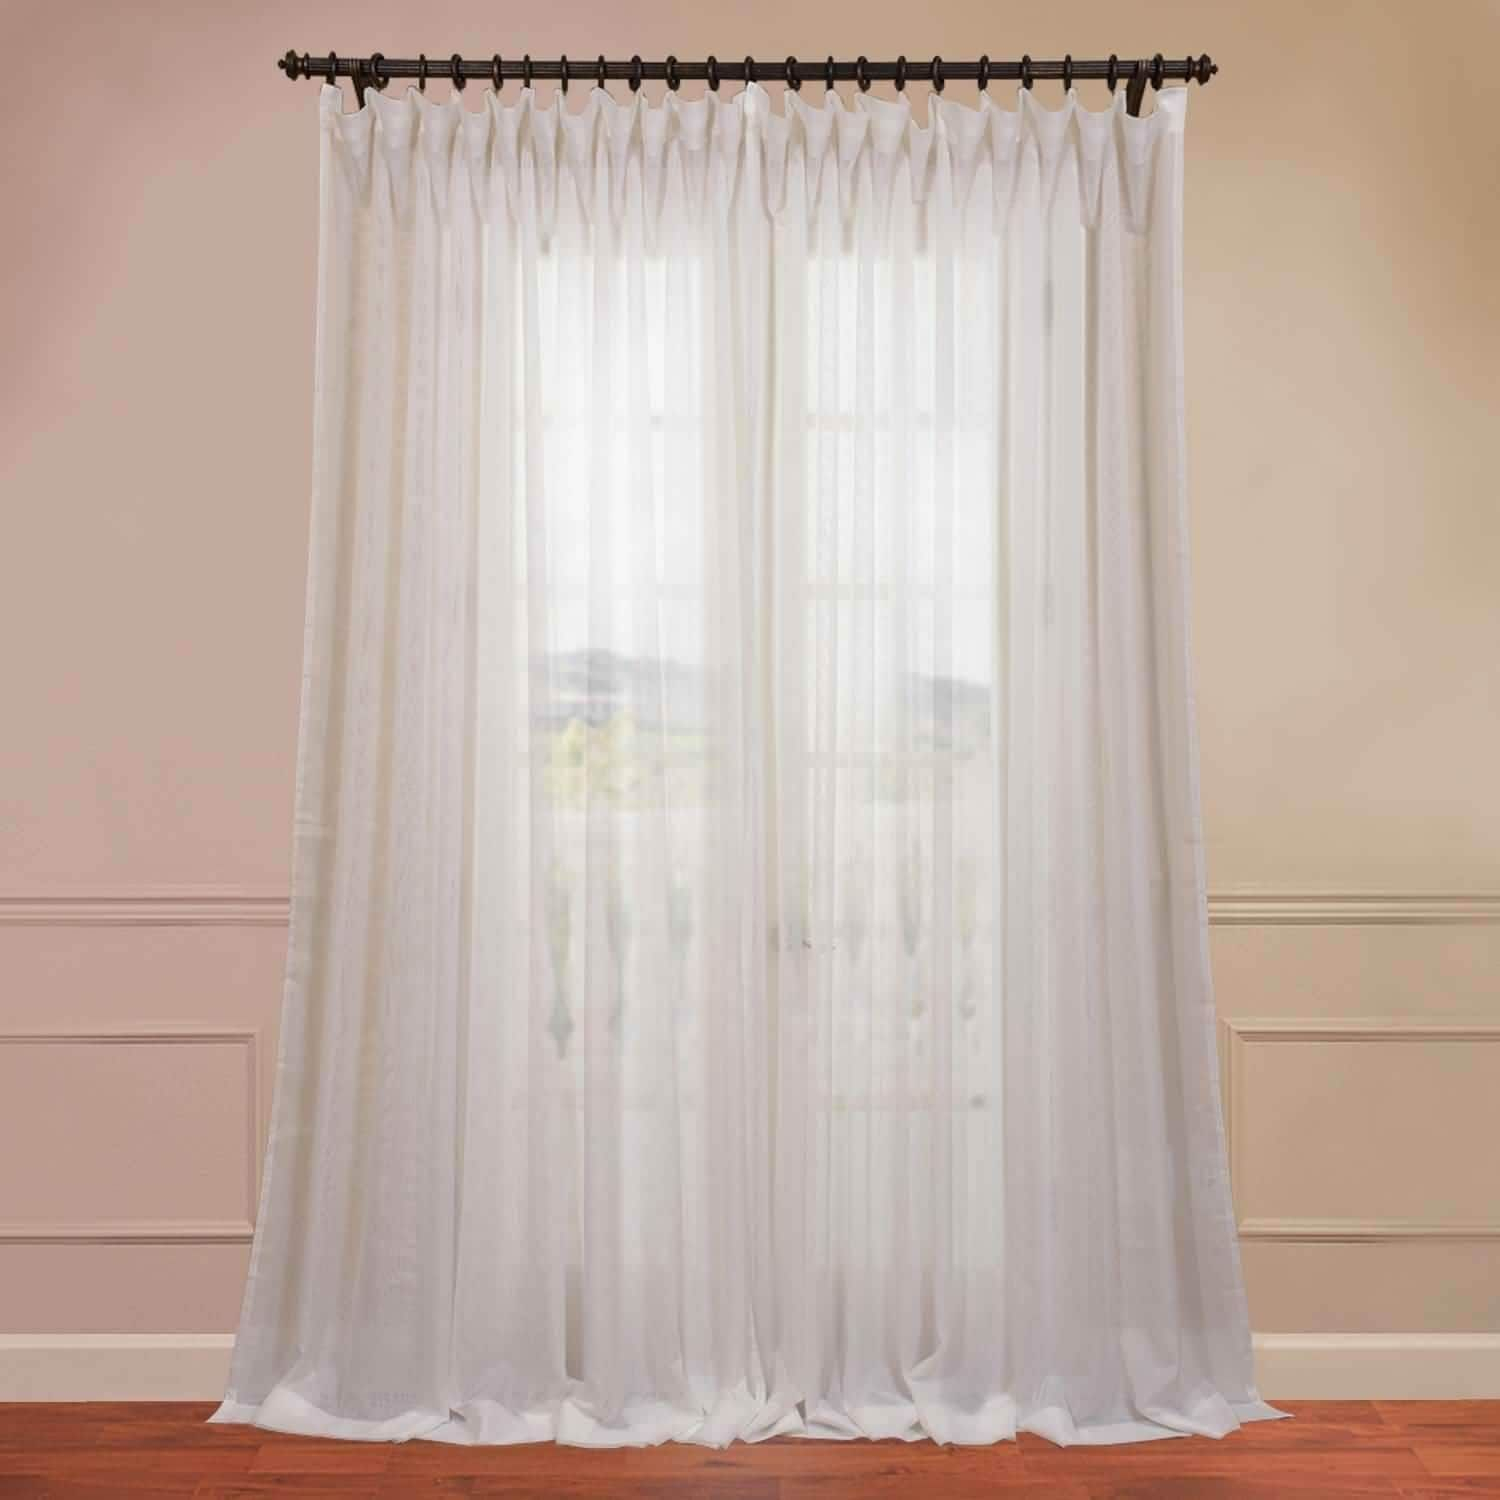 Exclusive Fabrics Signature Off White Extra Wide Double In Signature Extrawide Double Layer Sheer Curtain Panels (View 11 of 11)